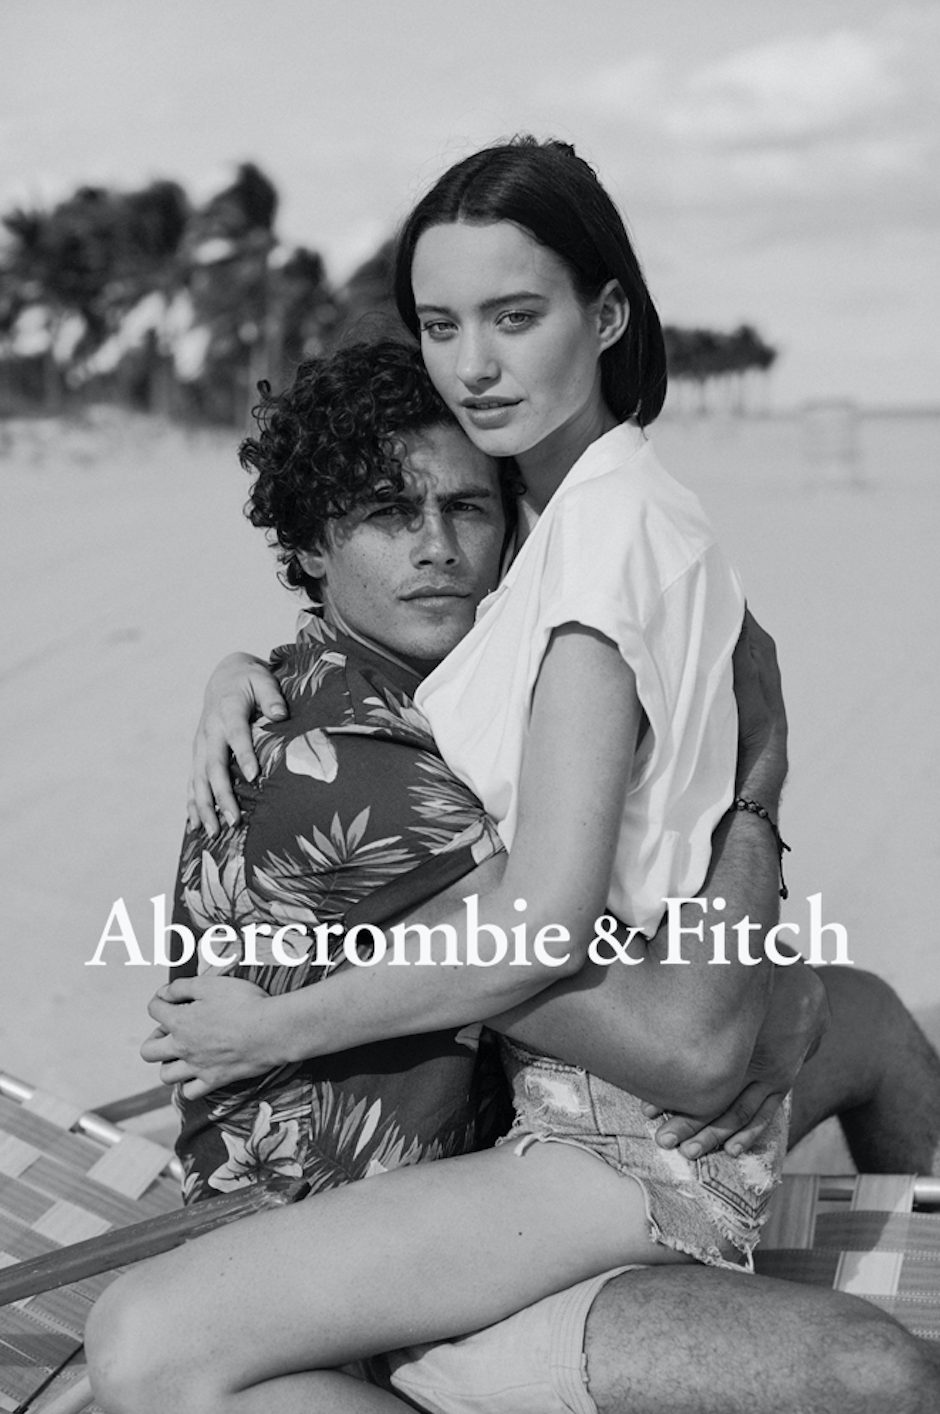 HAIR by Tara Jean for Abercrombie & Fitch